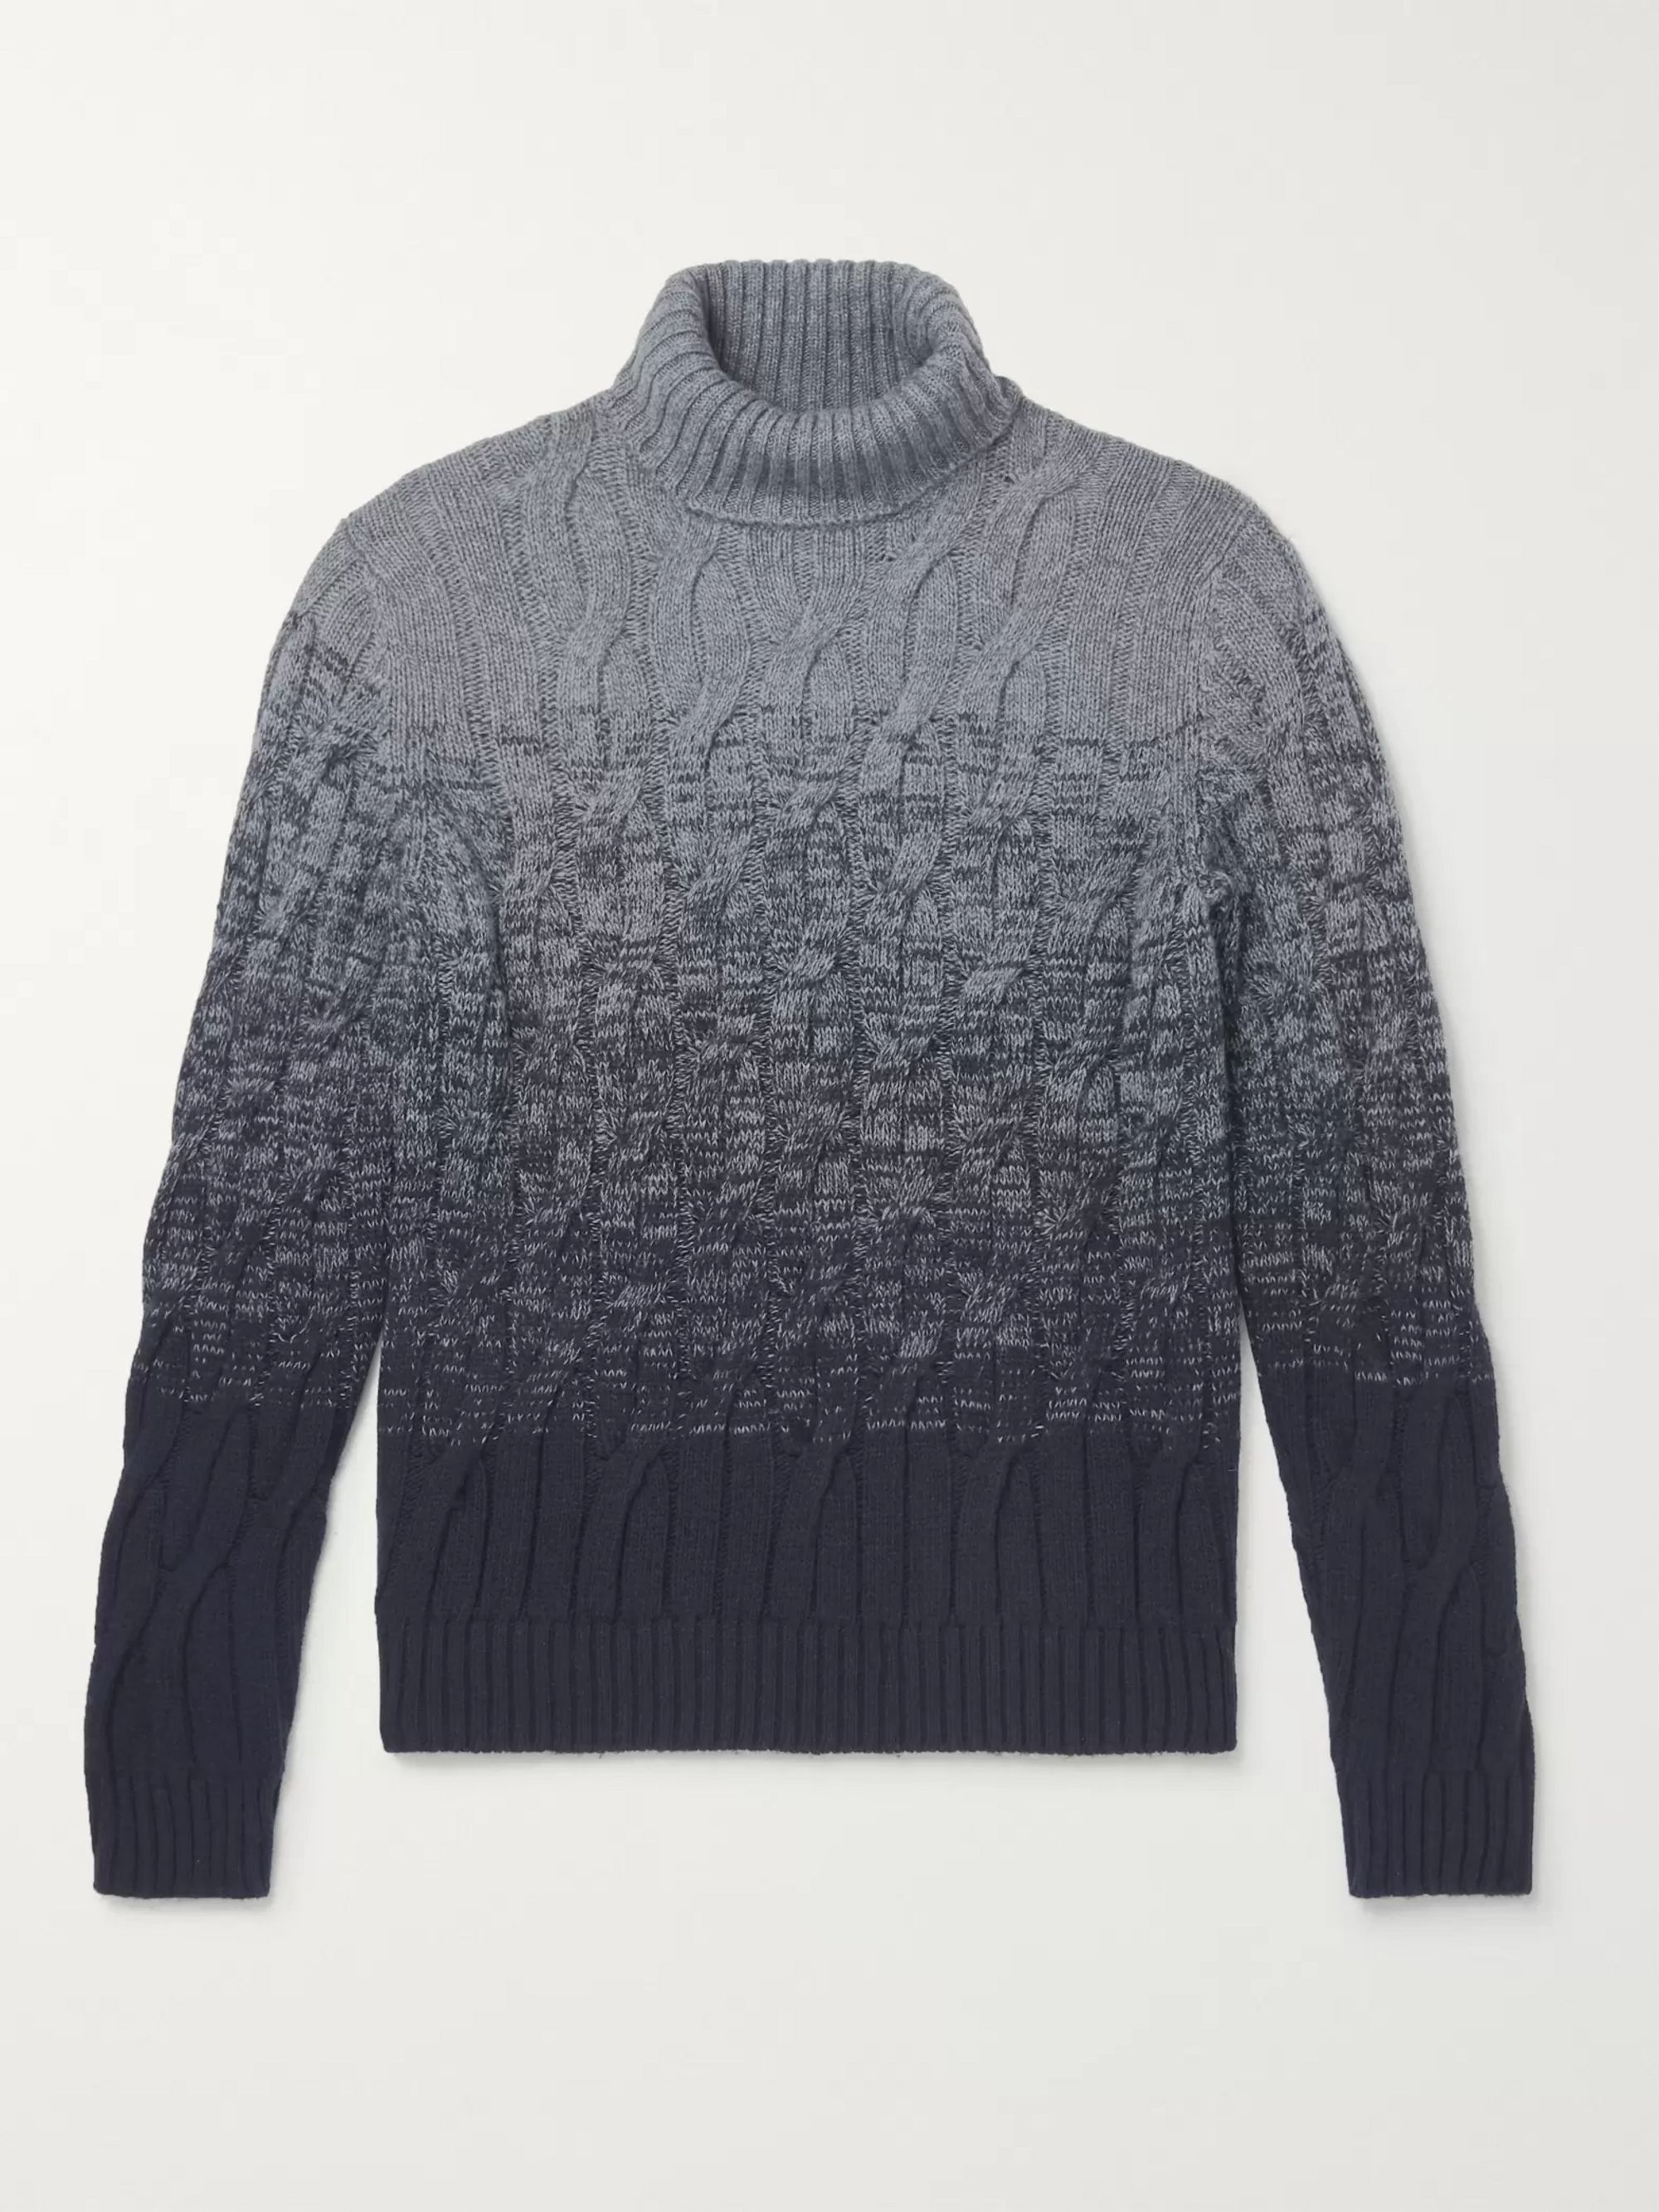 Incotex Slim-Fit Cable-Knit Ombré Virgin Wool and Cashmere-Blend Rollneck Sweater